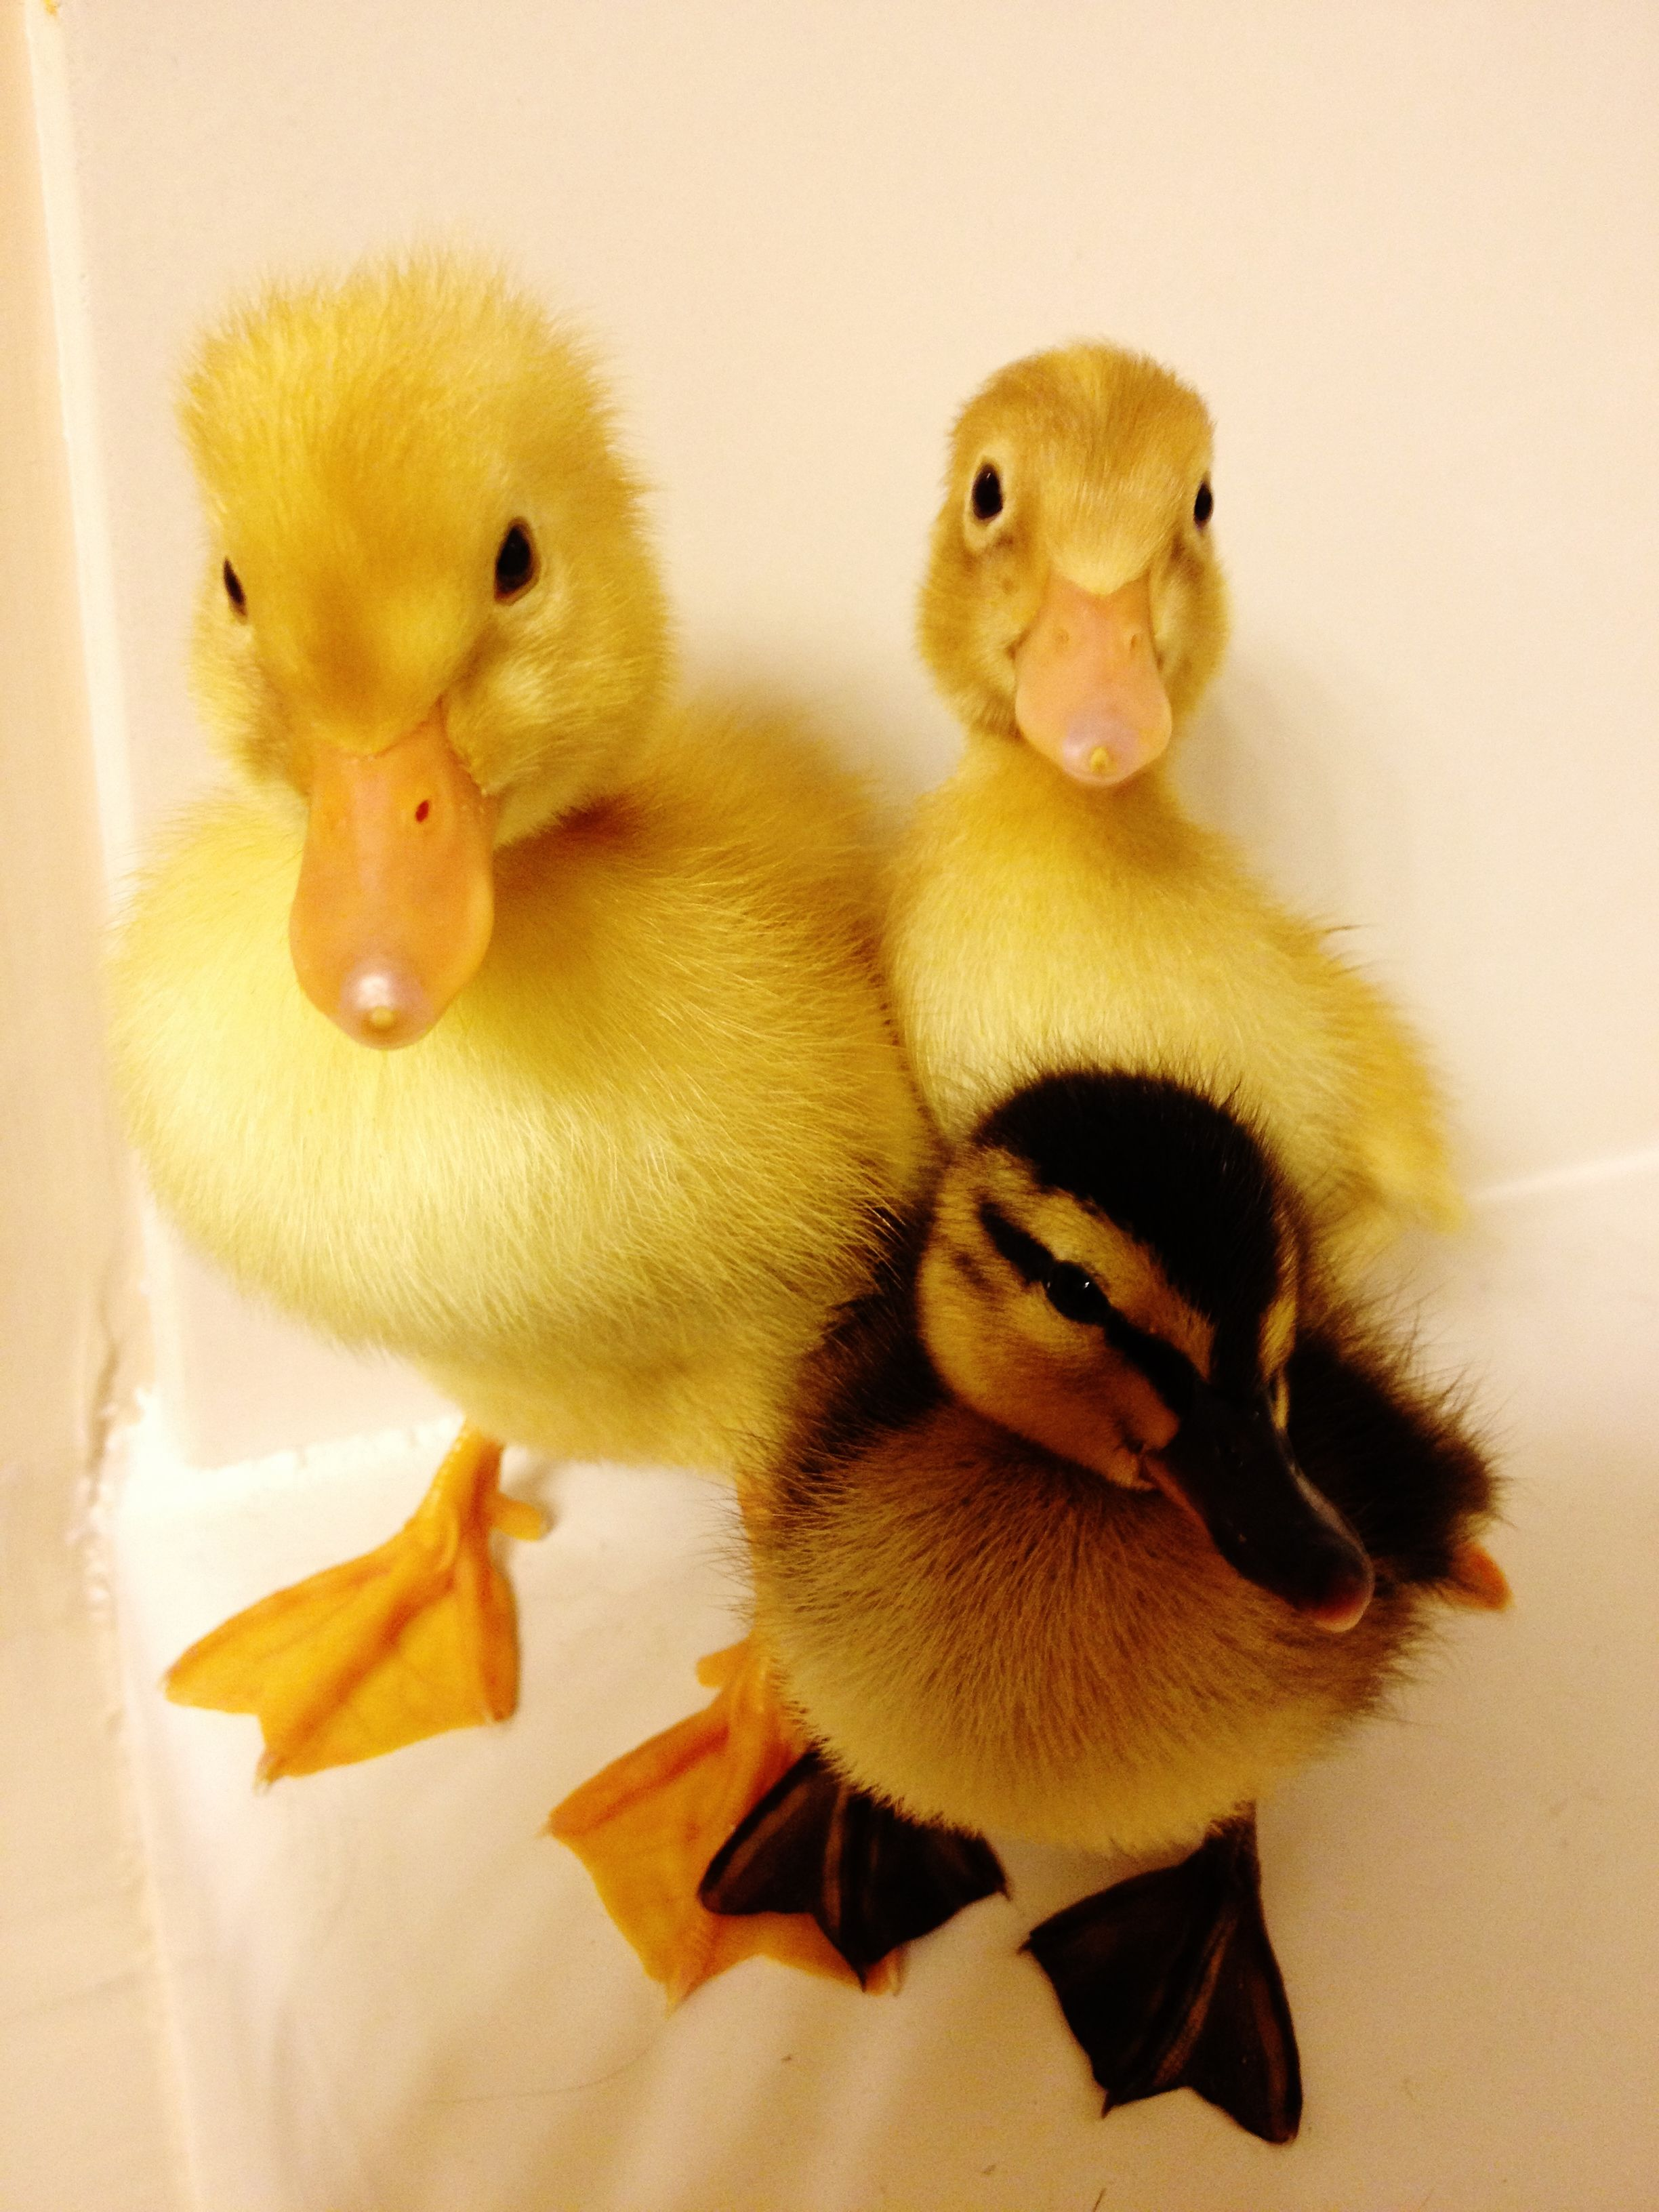 how to look after ducklings as pets